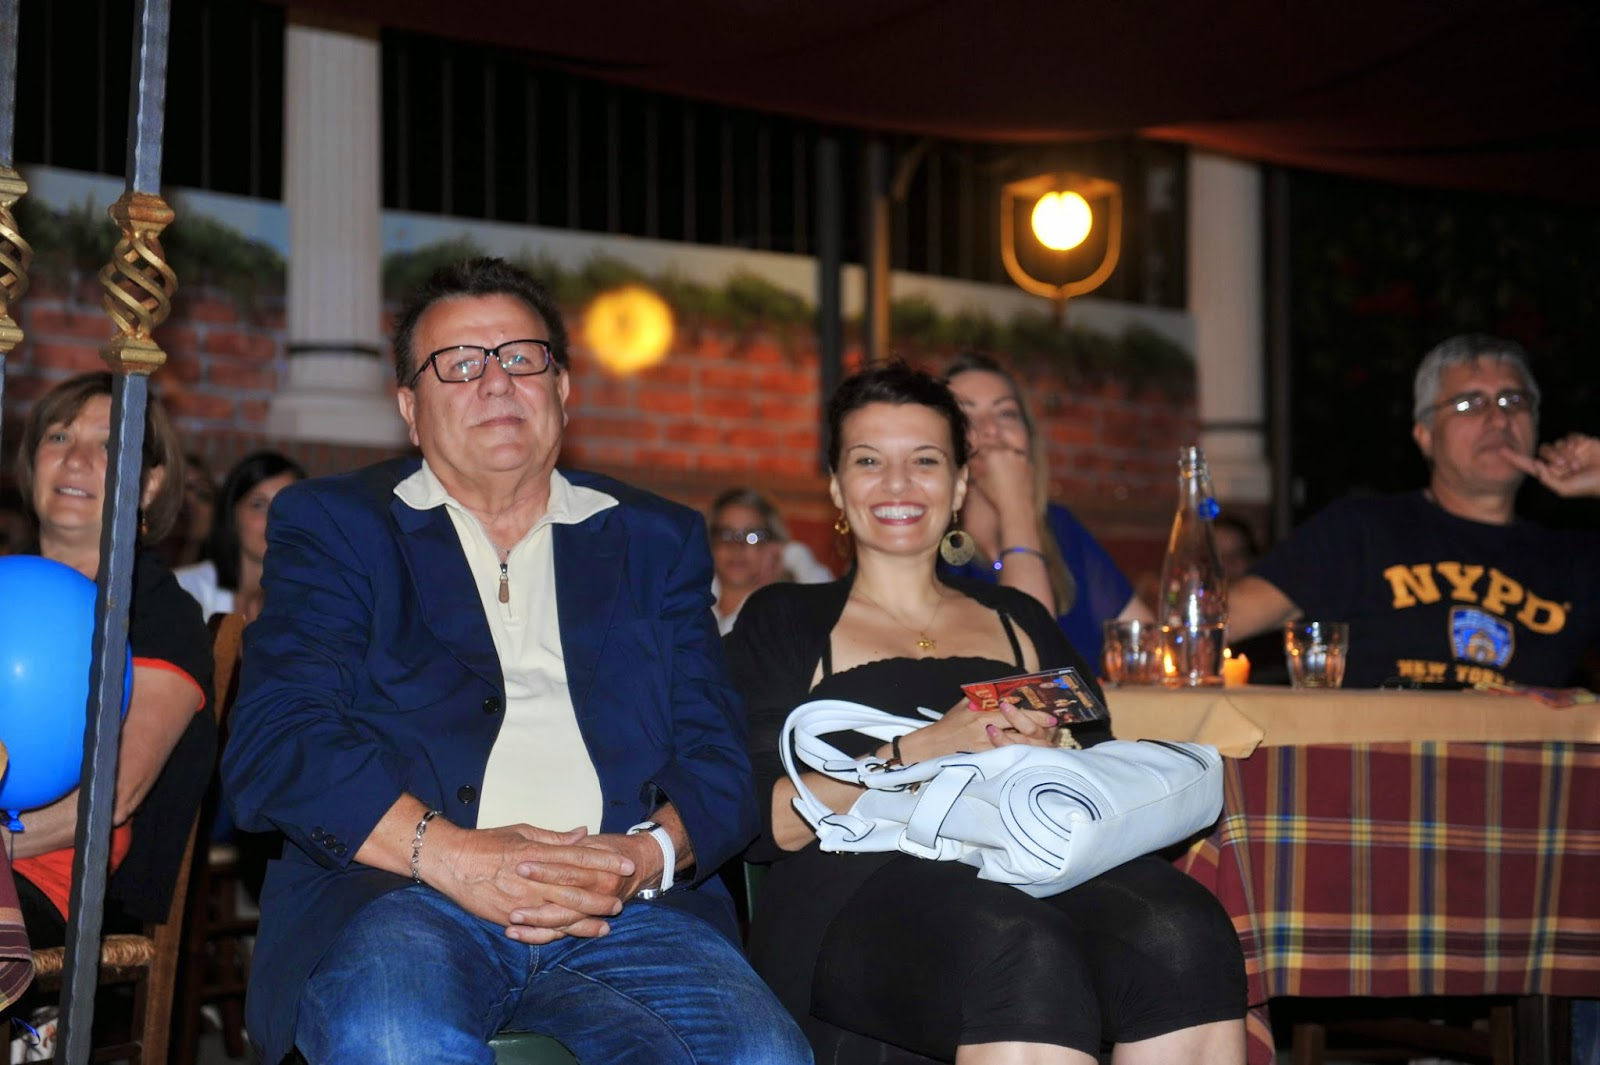 Anna tatangelo an upskirt classic new pictures